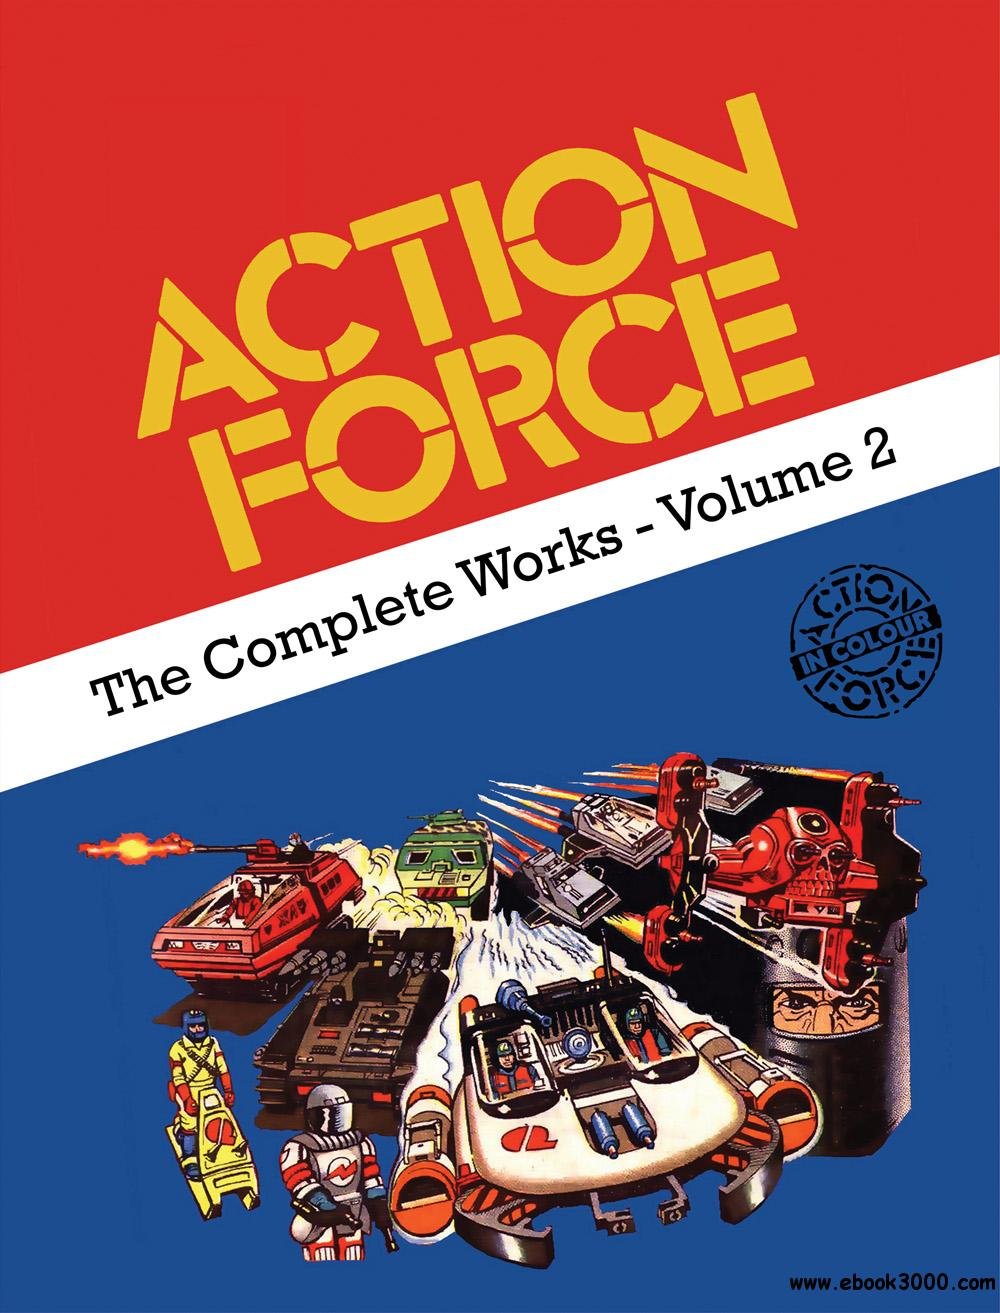 Action Force - The Complete Works - Volume #2 free download